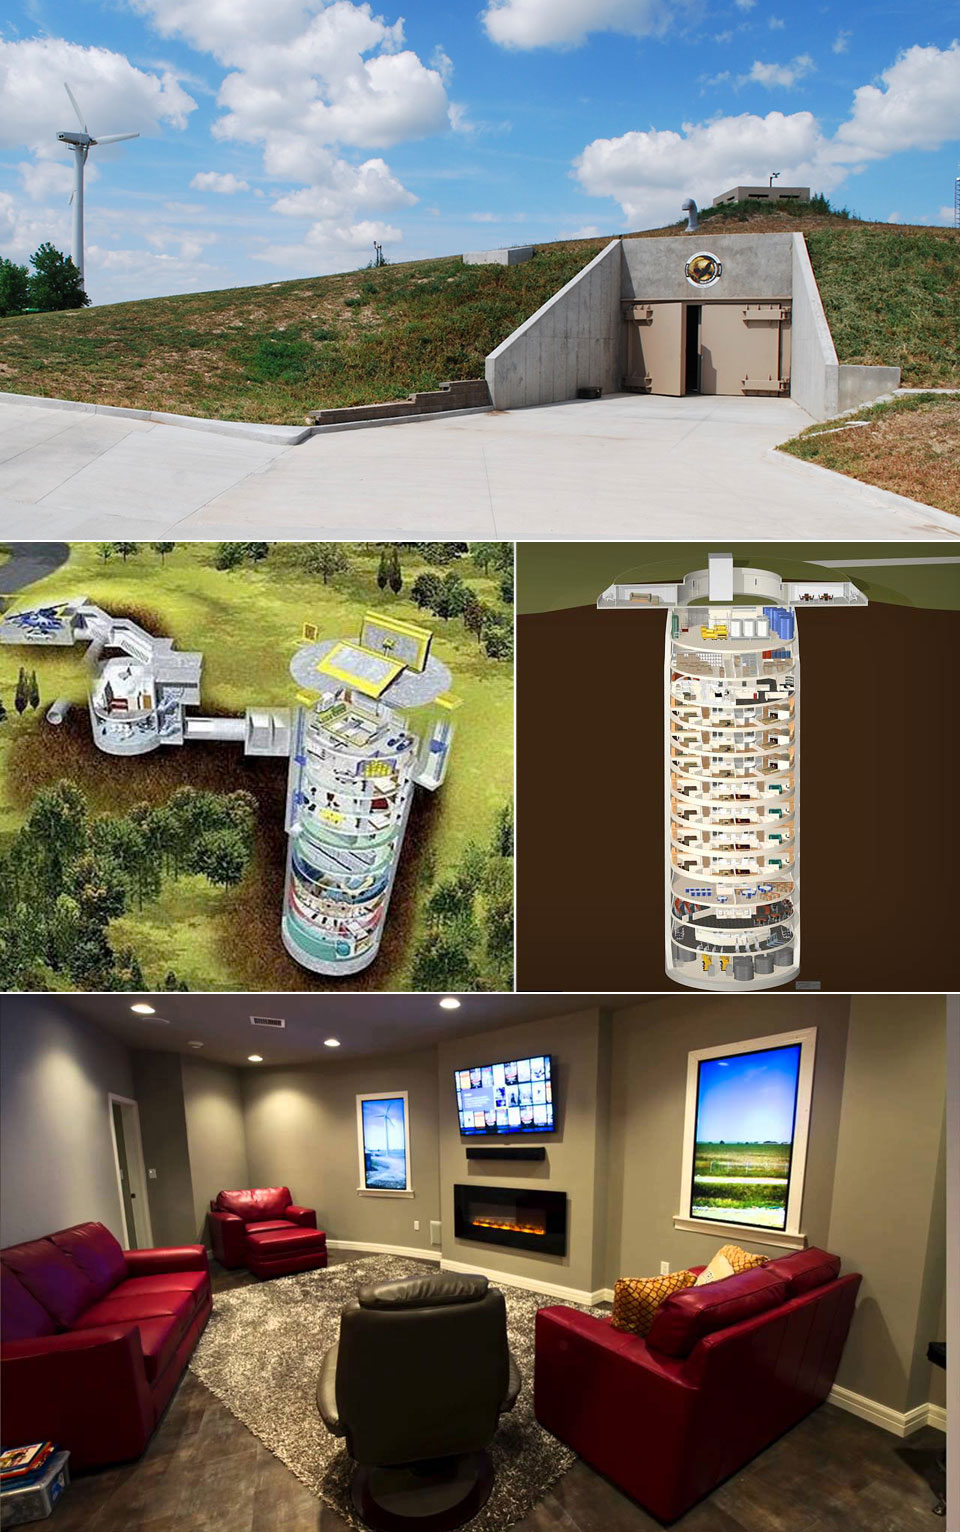 Survival Condo Doomsday Bunkers Are Built Inside A Real Missile